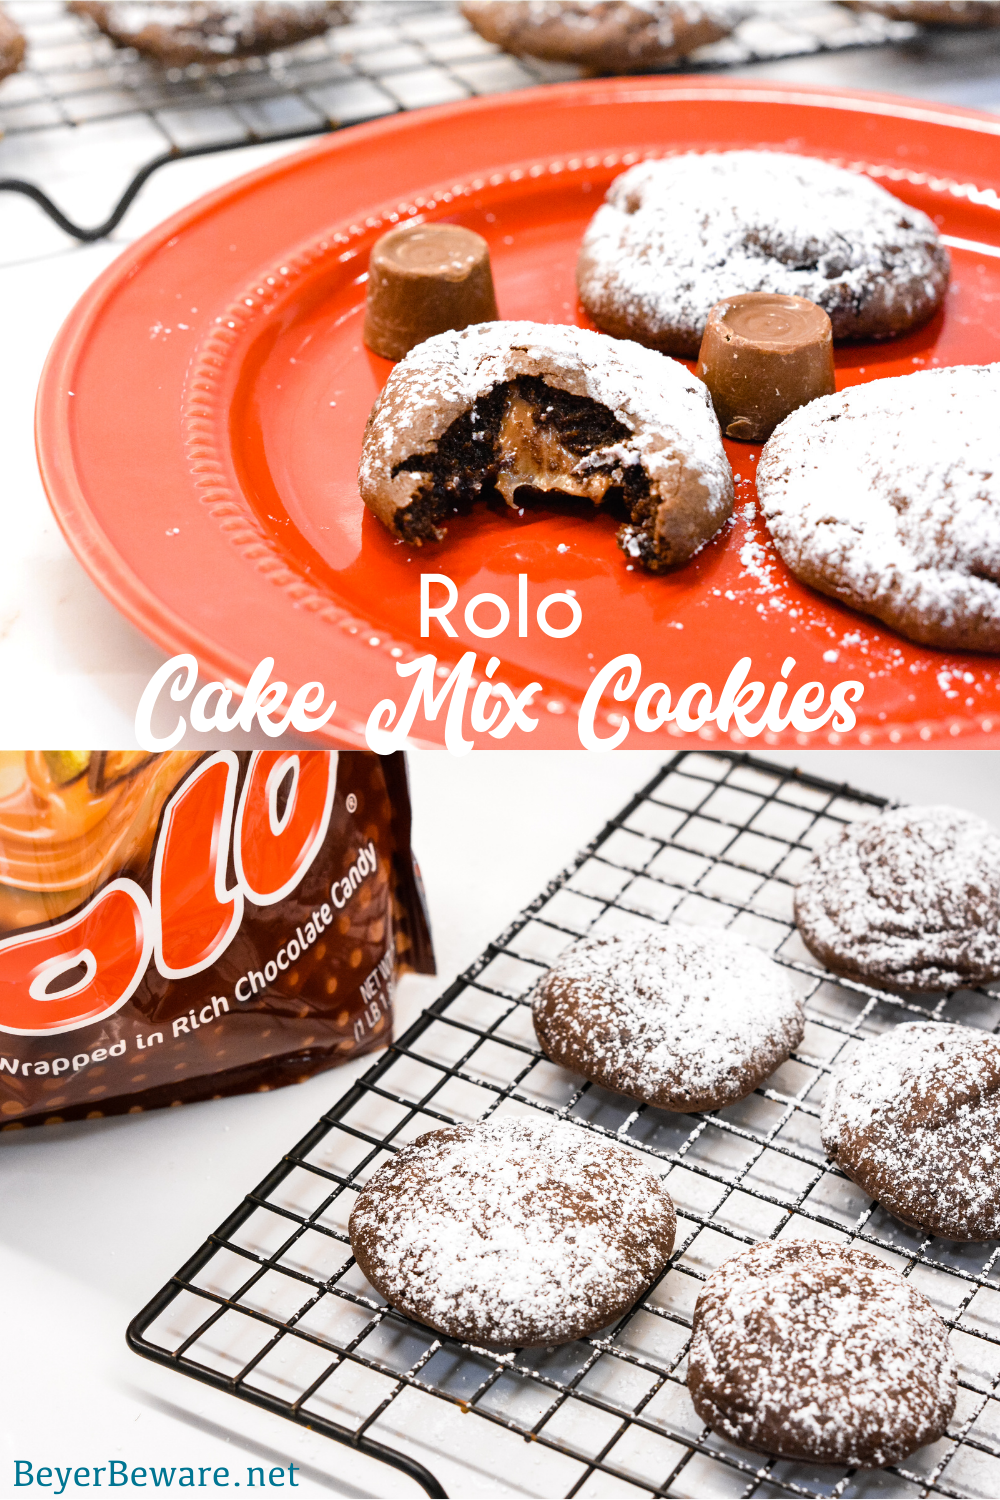 Rolo Cake Mix Cookies by Beyer Beware - WEEKEND POTLUCK 459